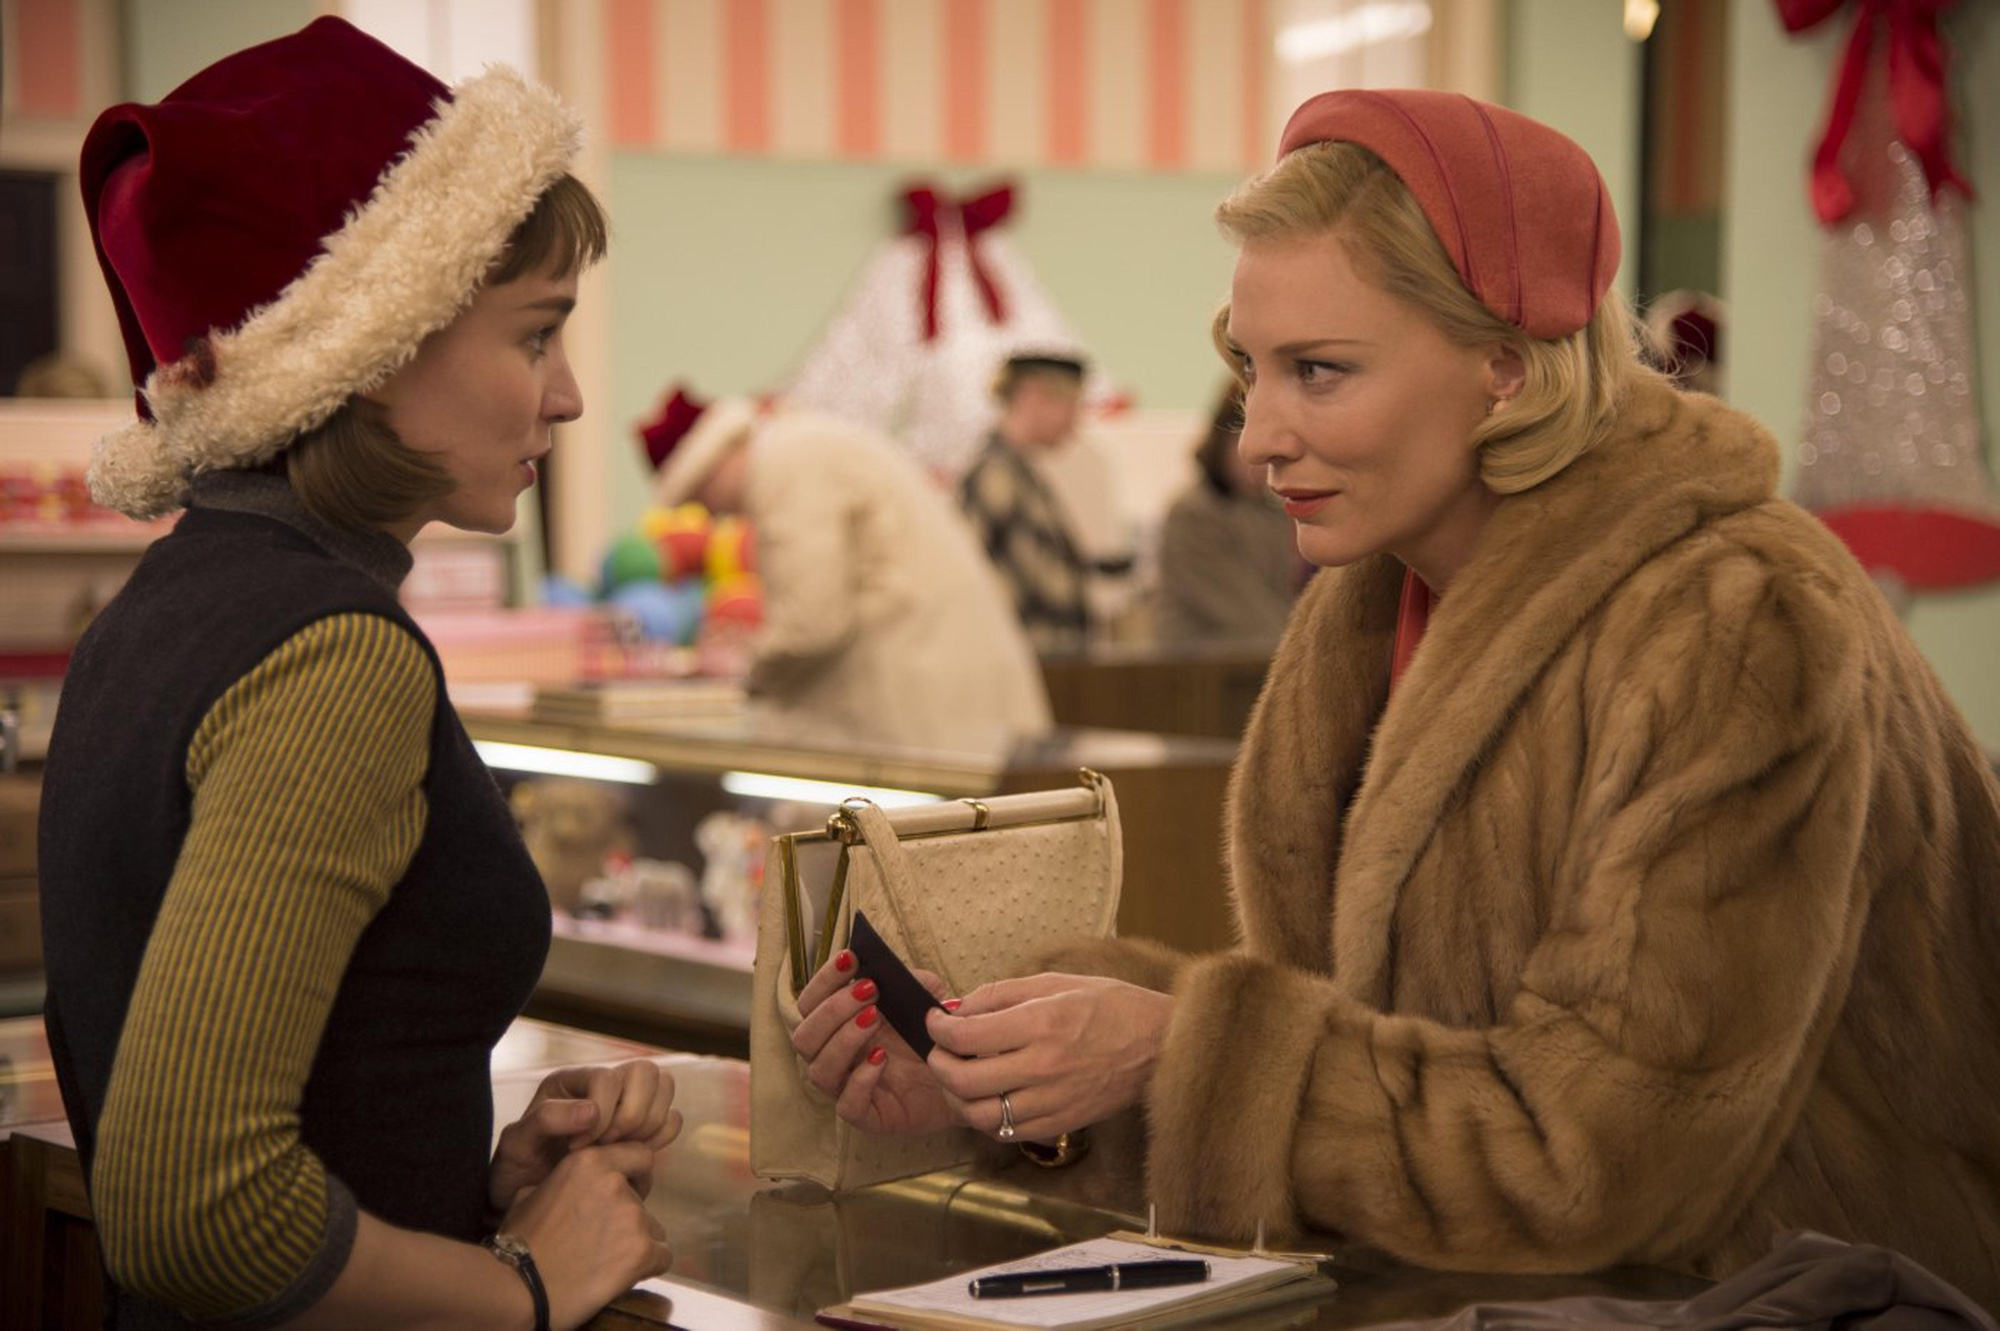 Movies to watch during Pride: Carol